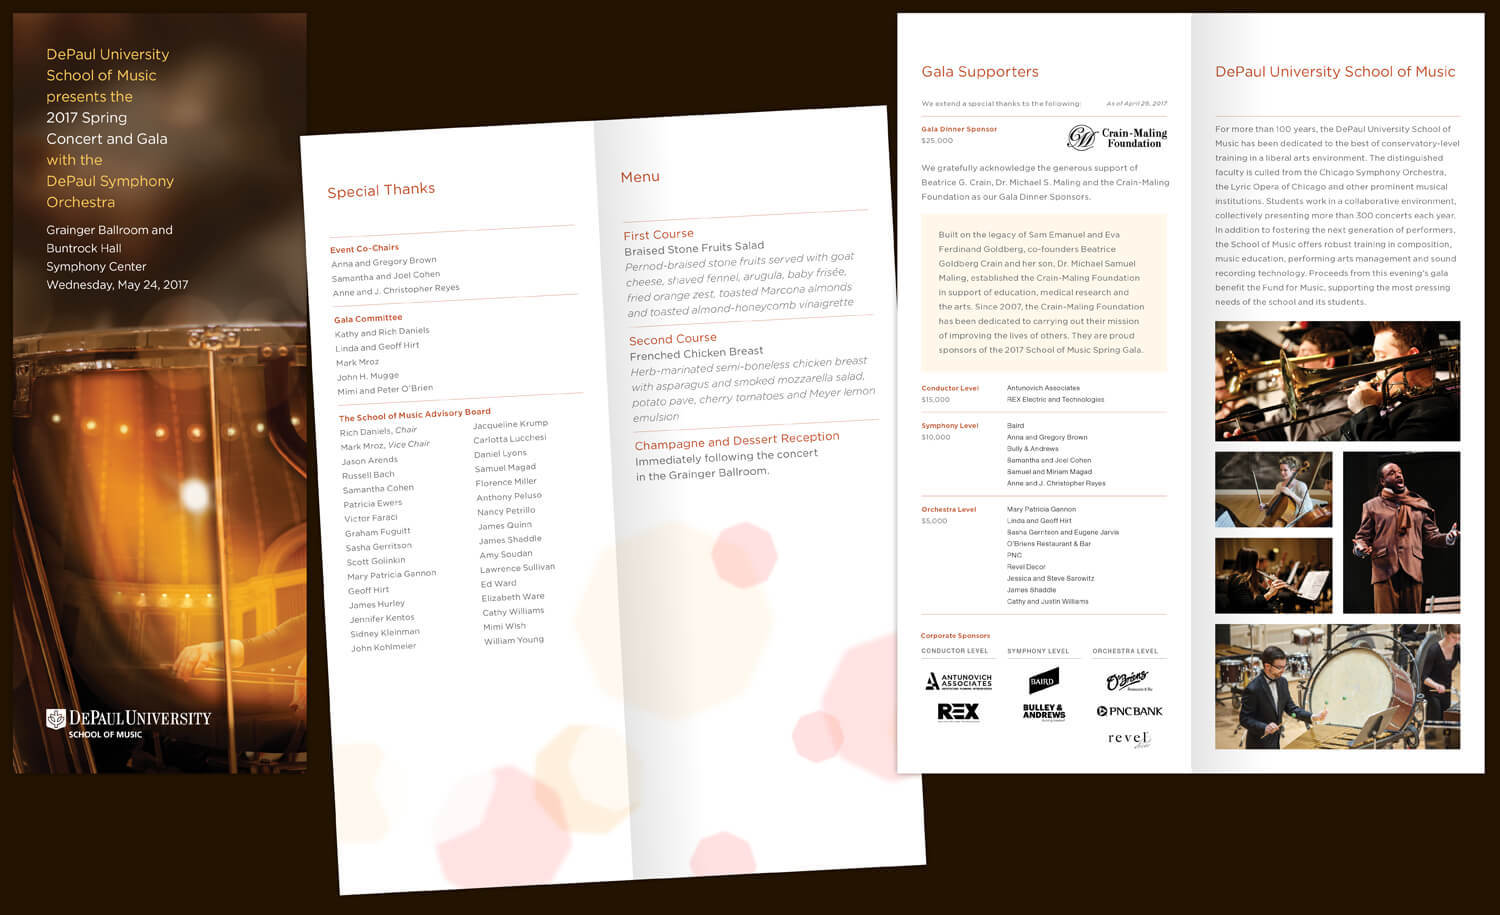 DEP-SOM-Gala-Program-Book.jpg#asset:1618